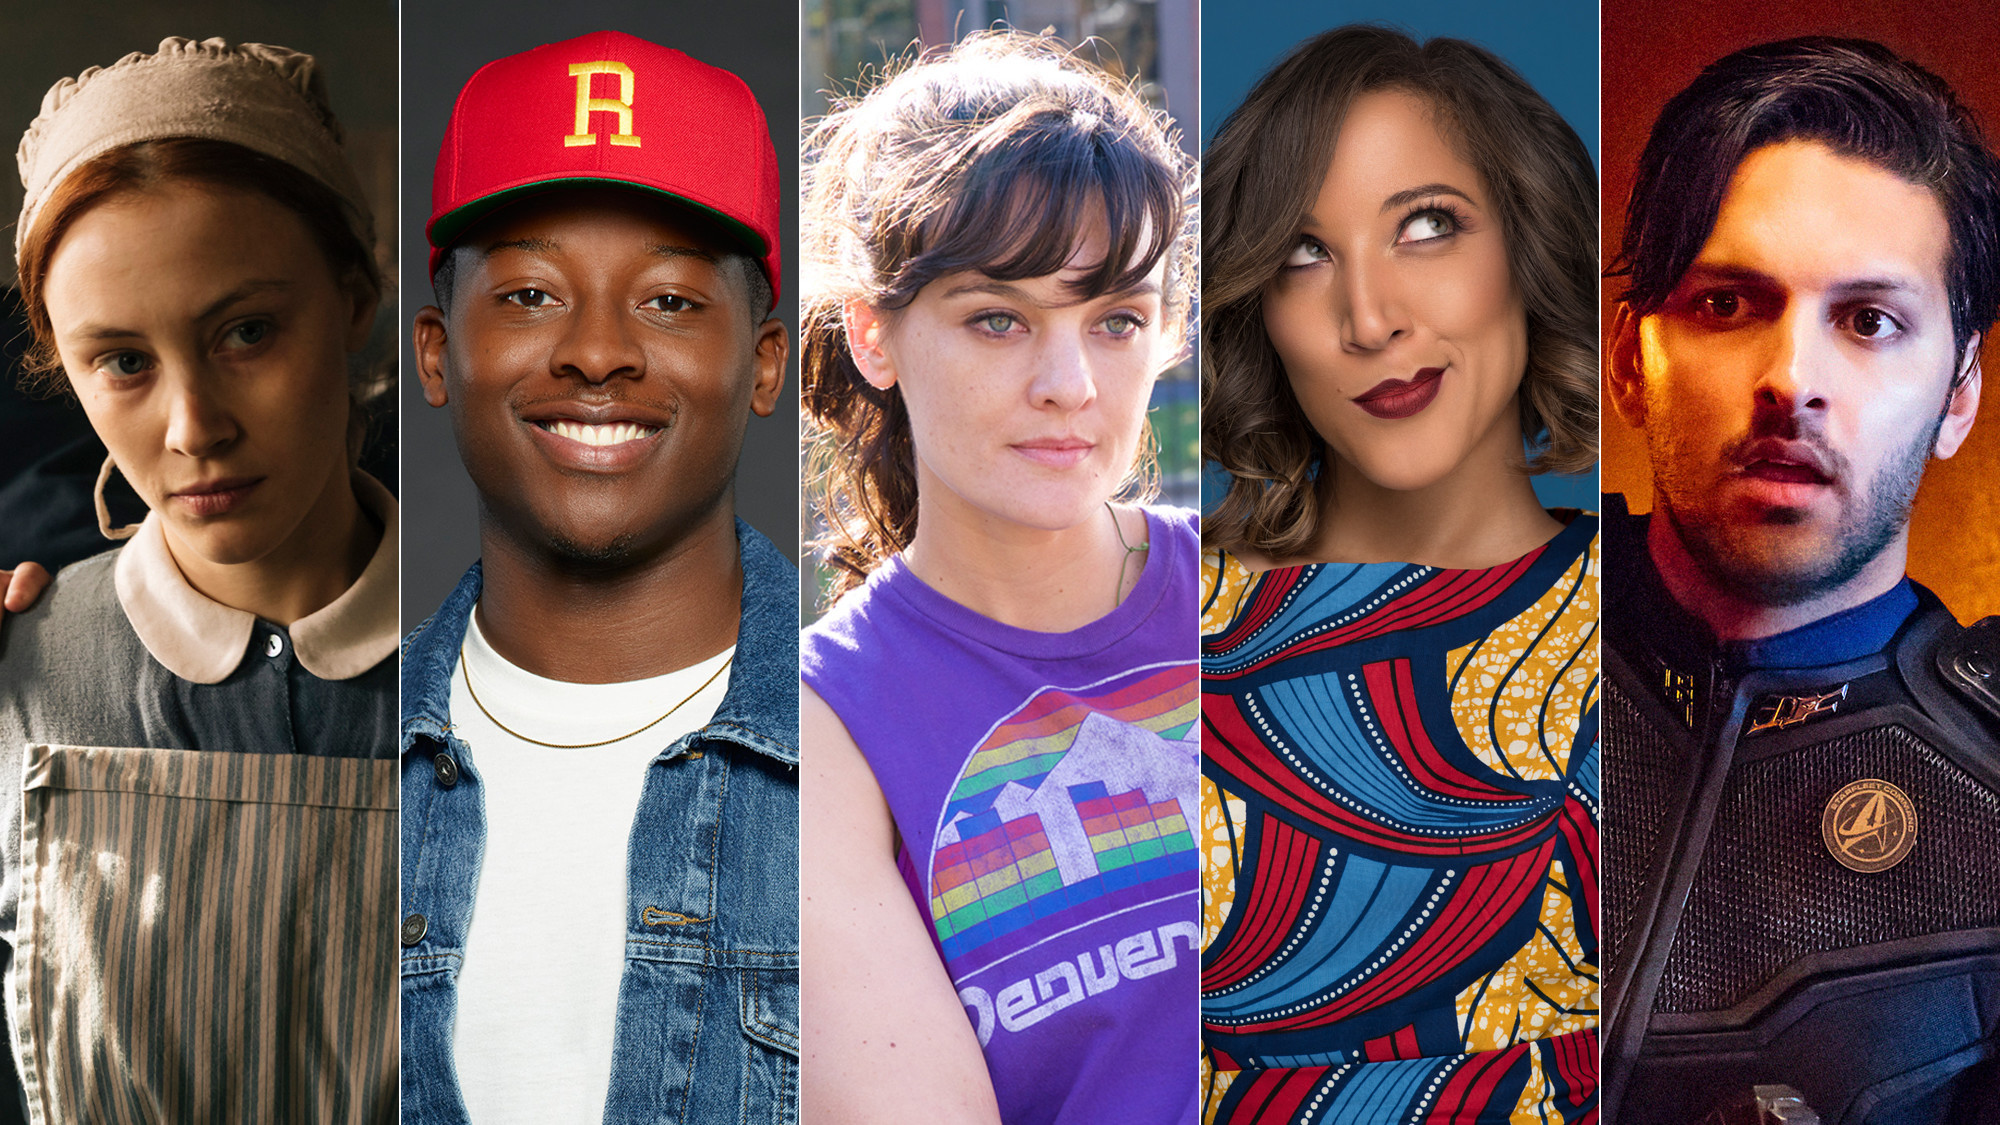 Sarah Gadon, left, Brandon Michael Hall, Frankie Shaw, Robin Thede and Shazad Latif are among the new faces viewers will see on TV this fall. (Netflix; Craig Sjodin / ABC; Mark Schafer / Showtime; BET; Jan Thijs / CBS)